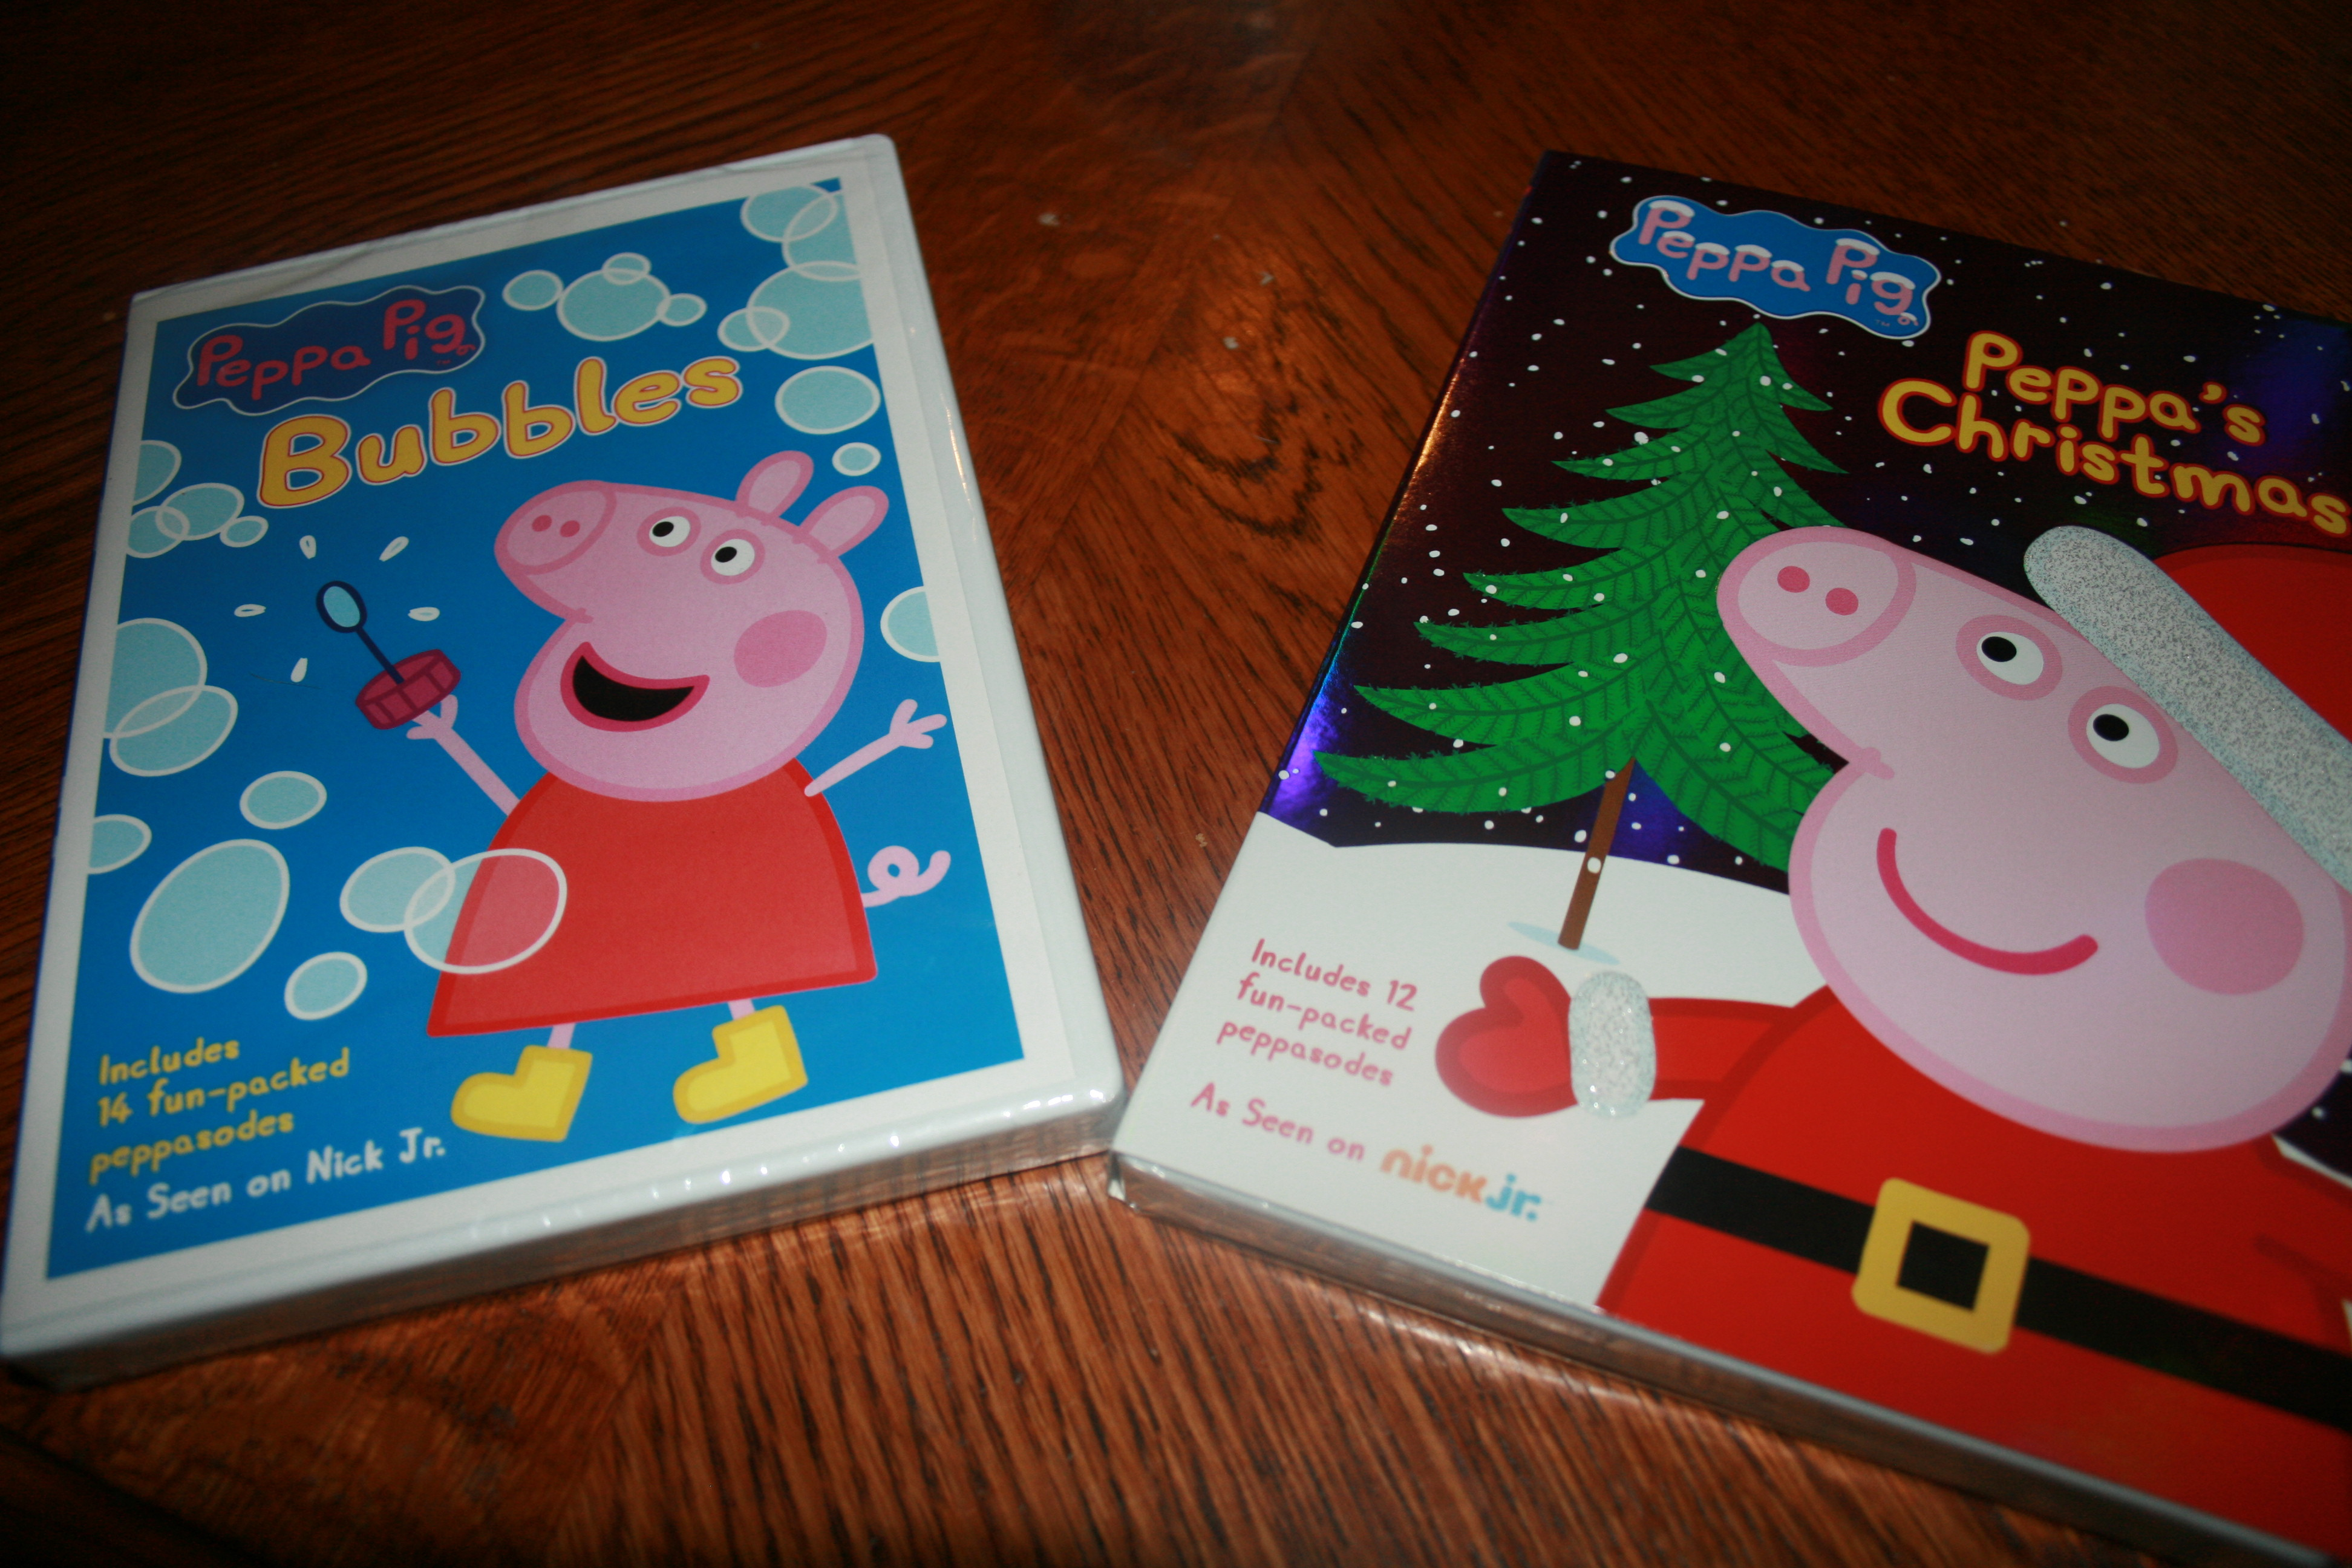 Peppa Pig Christmas Peppa Pig Bubbles 2014holidaygiftguide Review